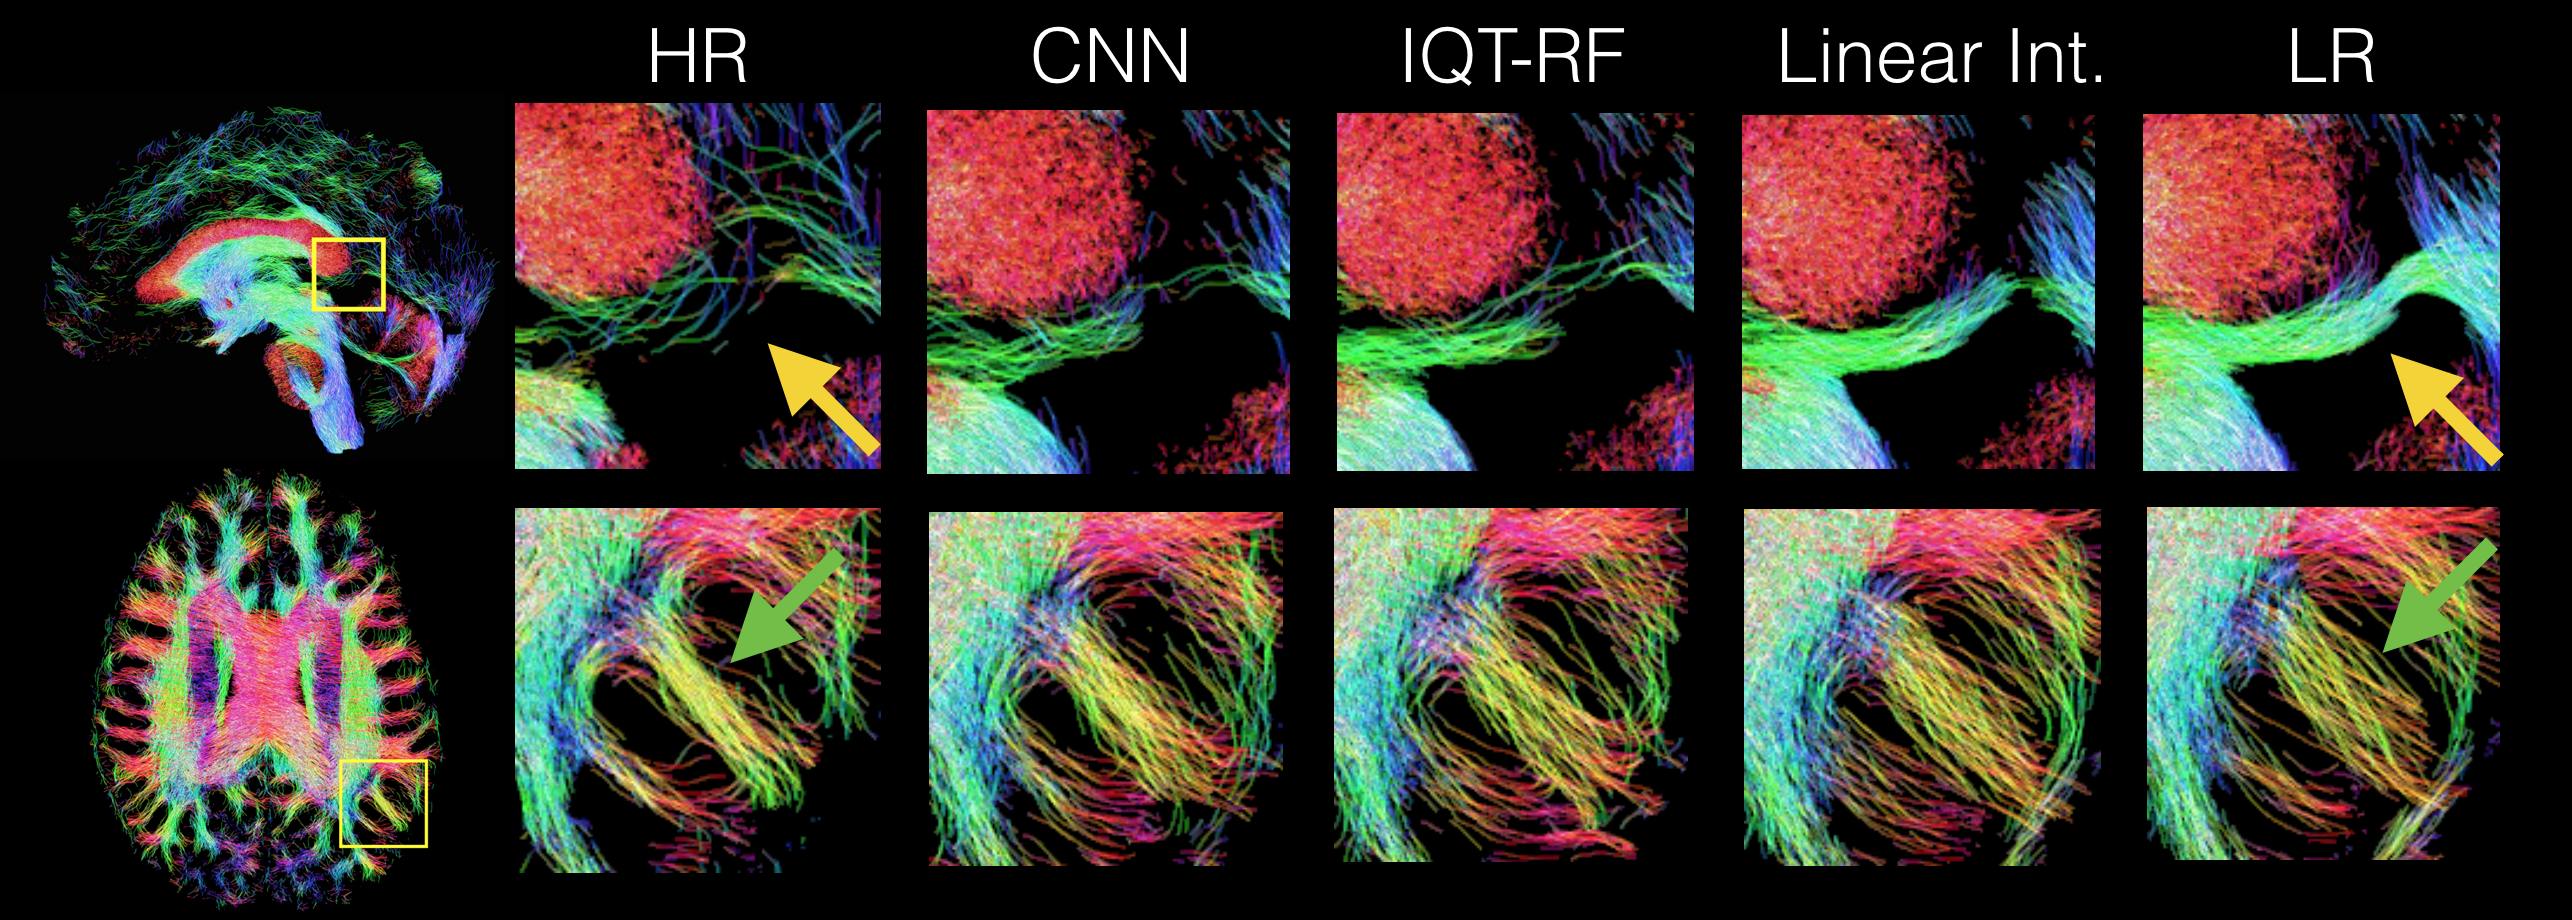 Streamline maps of the probabilistic tractography